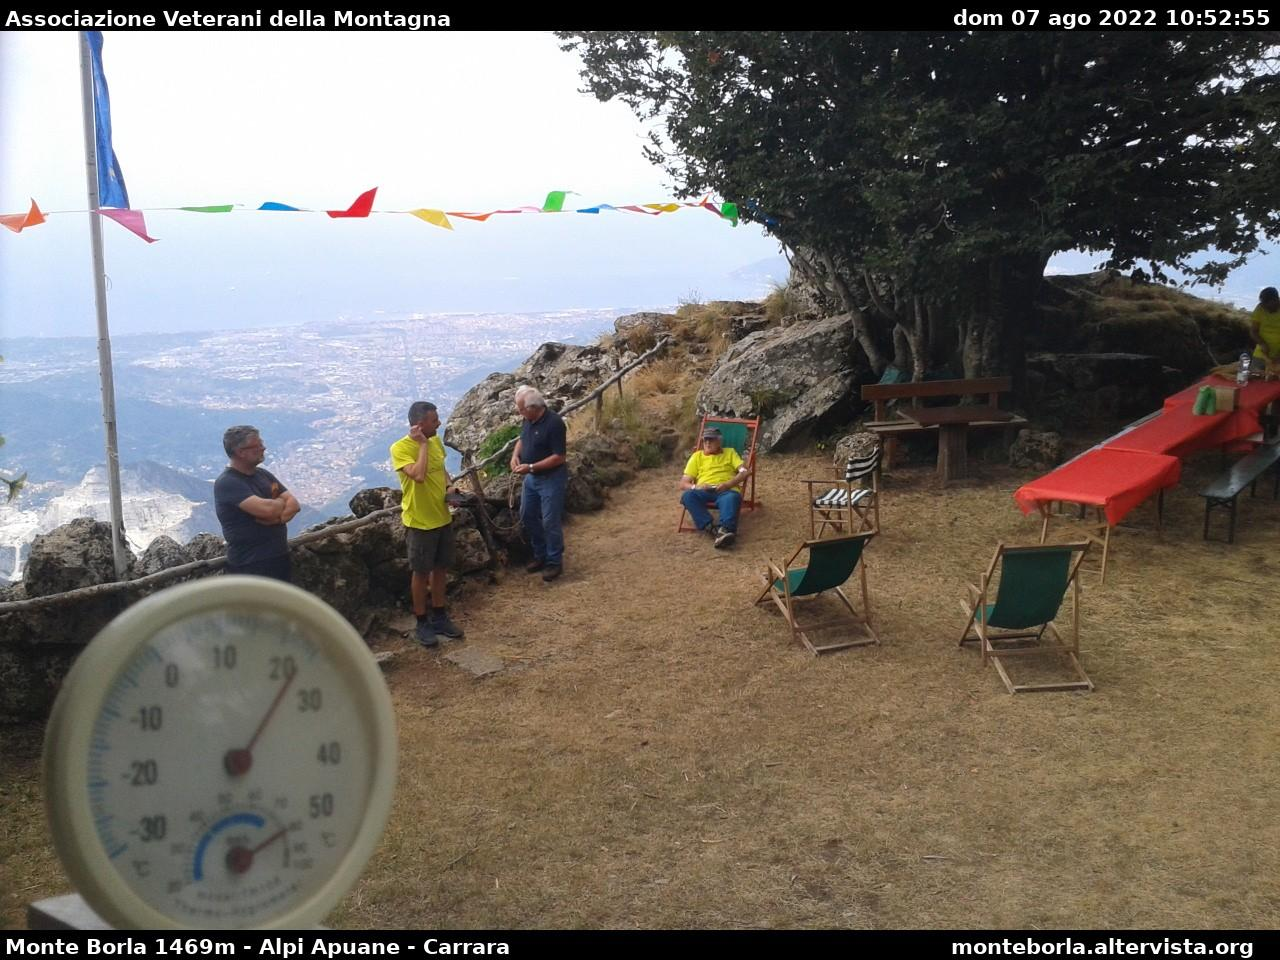 webcam  Monte Borla (1470 m), webcam provincia di Massa-Carrara, webcam Toscana, Webcam Toscana